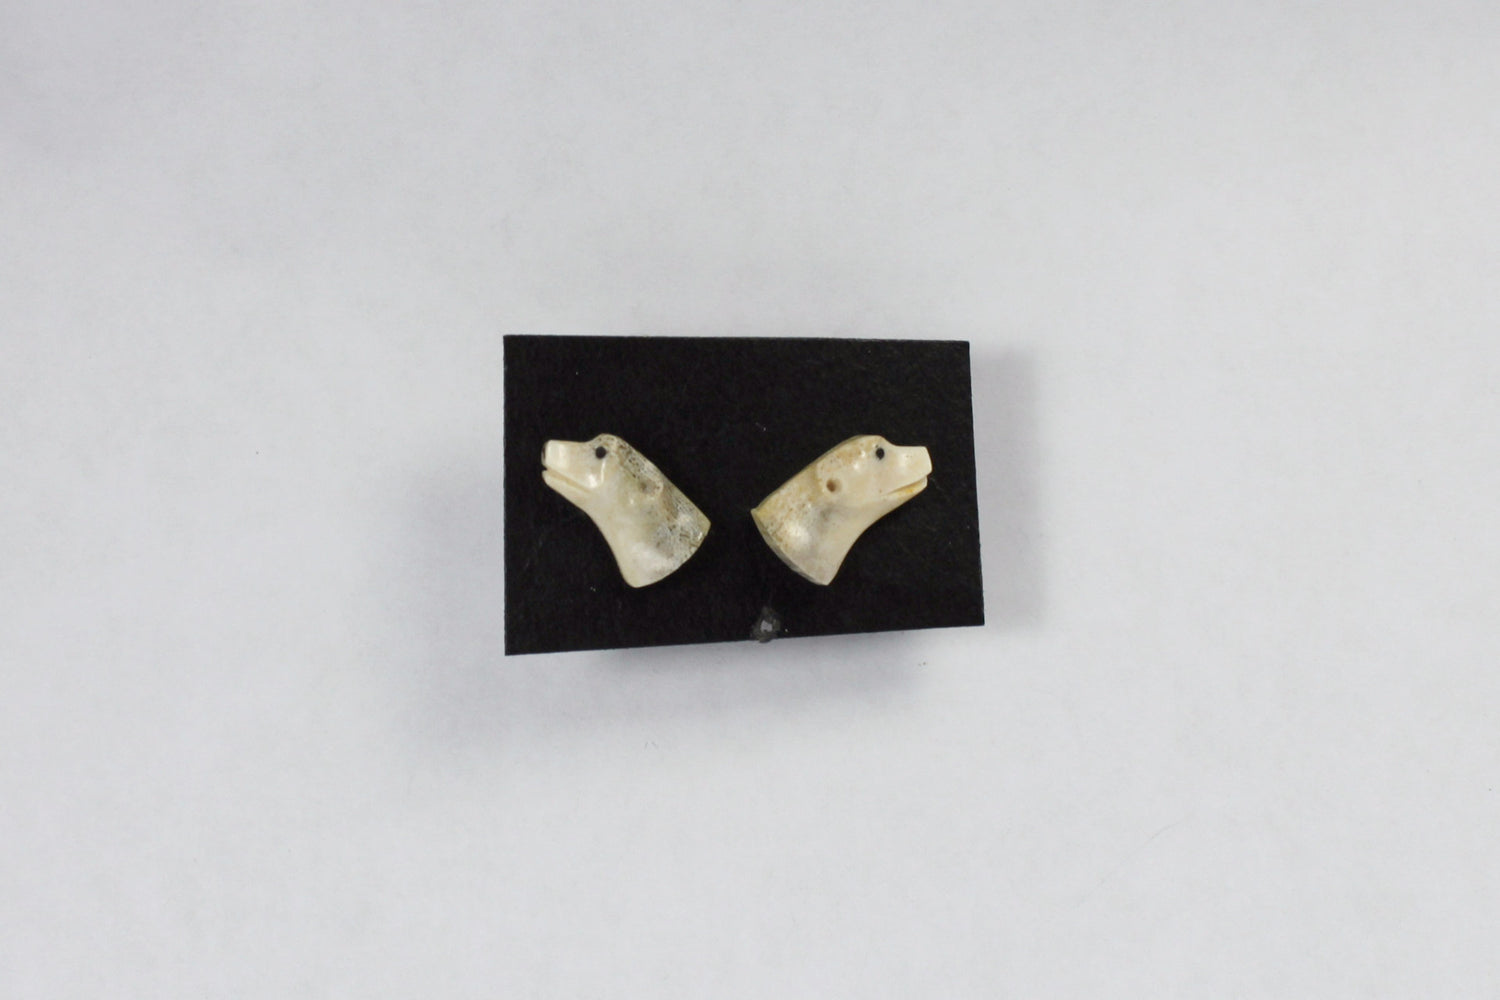 Bear head stud earrings in caribou antler by Andrew Nowdlak.